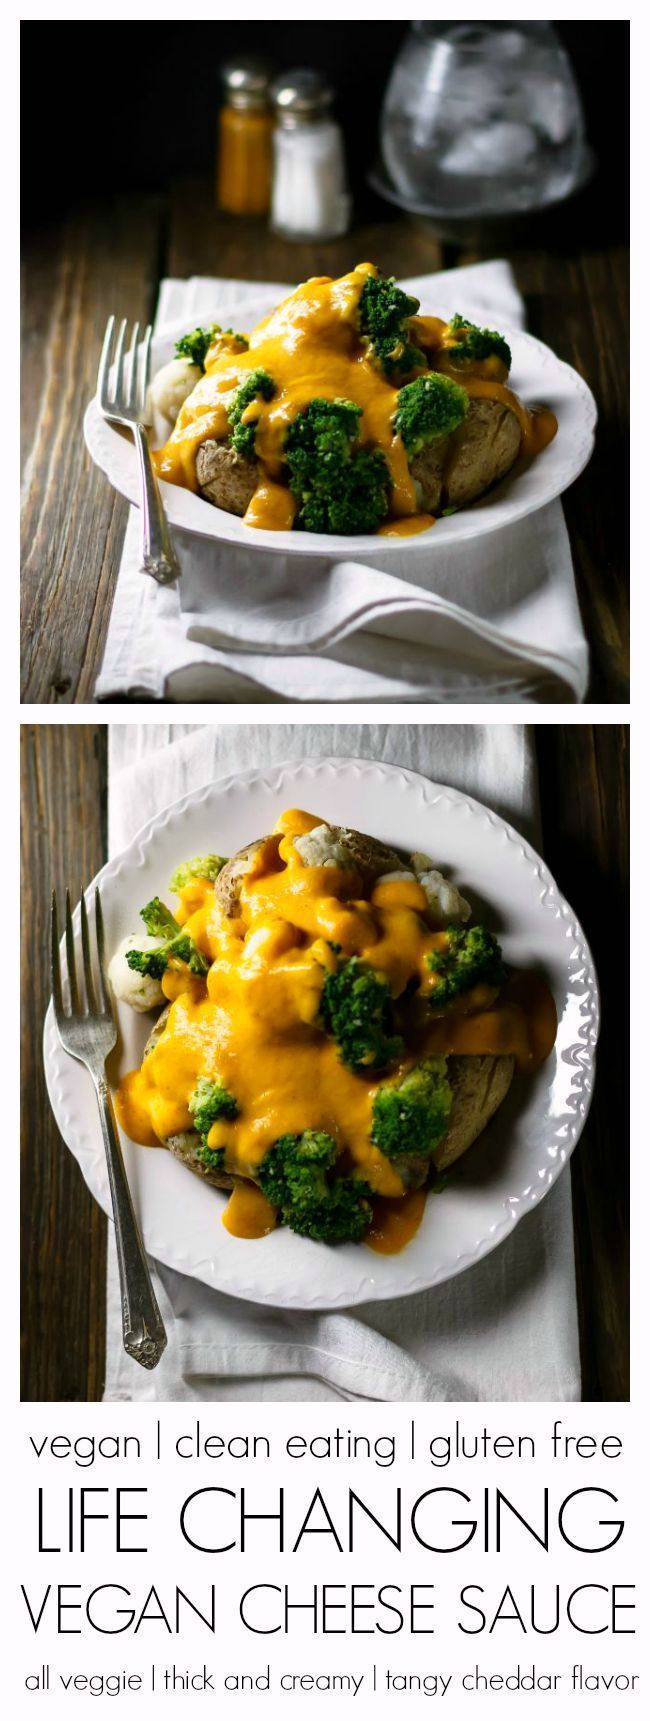 Life Changing Vegan Cheese Sauce | unbelievably easy and cheesy! | #vegan #glutenfree #cleaneating | Eat Healthy Eat Happy